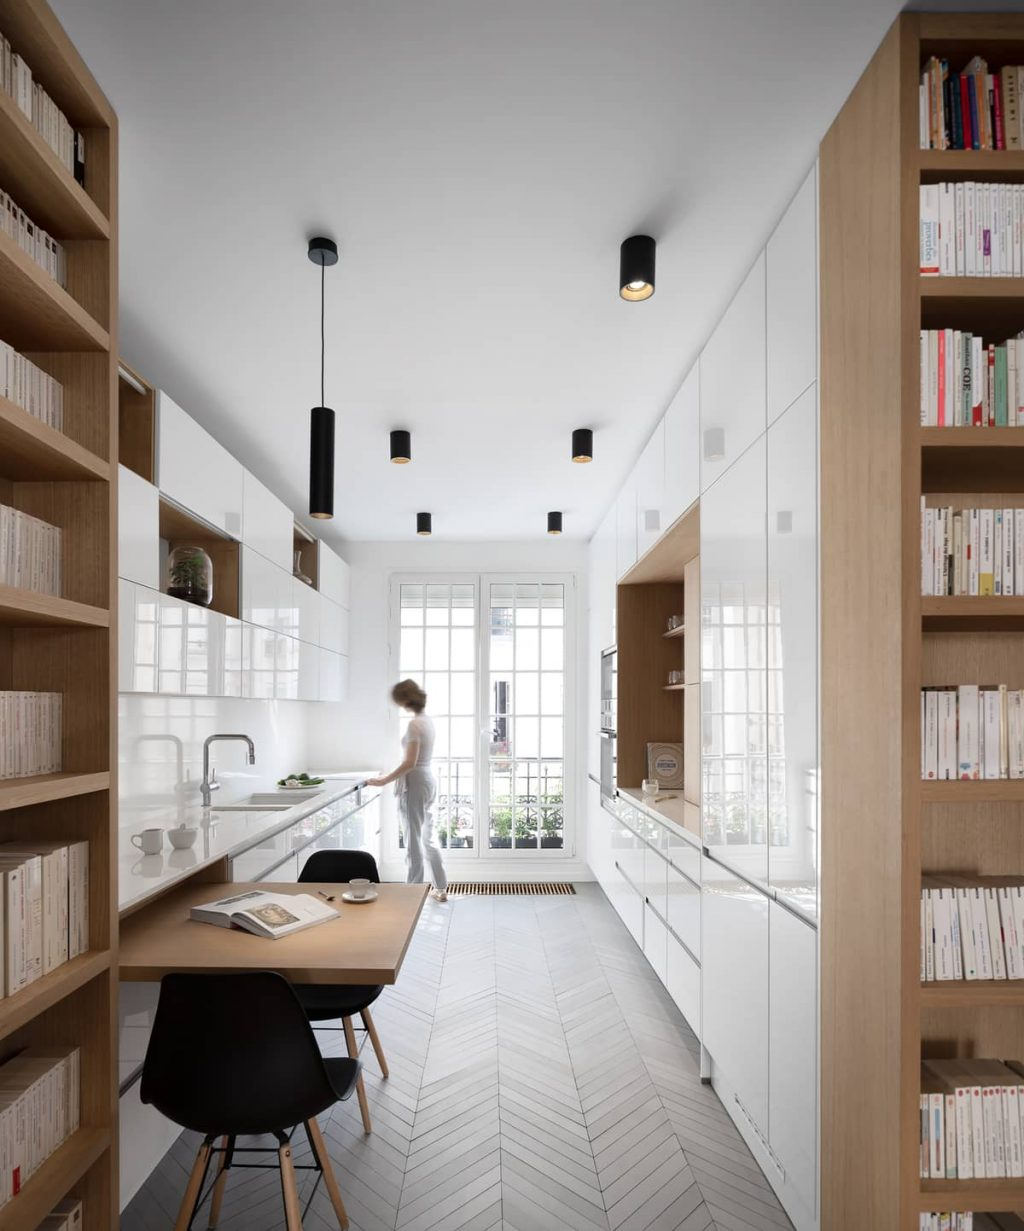 A Two-Bedroom Flat Was Reconfigured Into a Modern Apartment